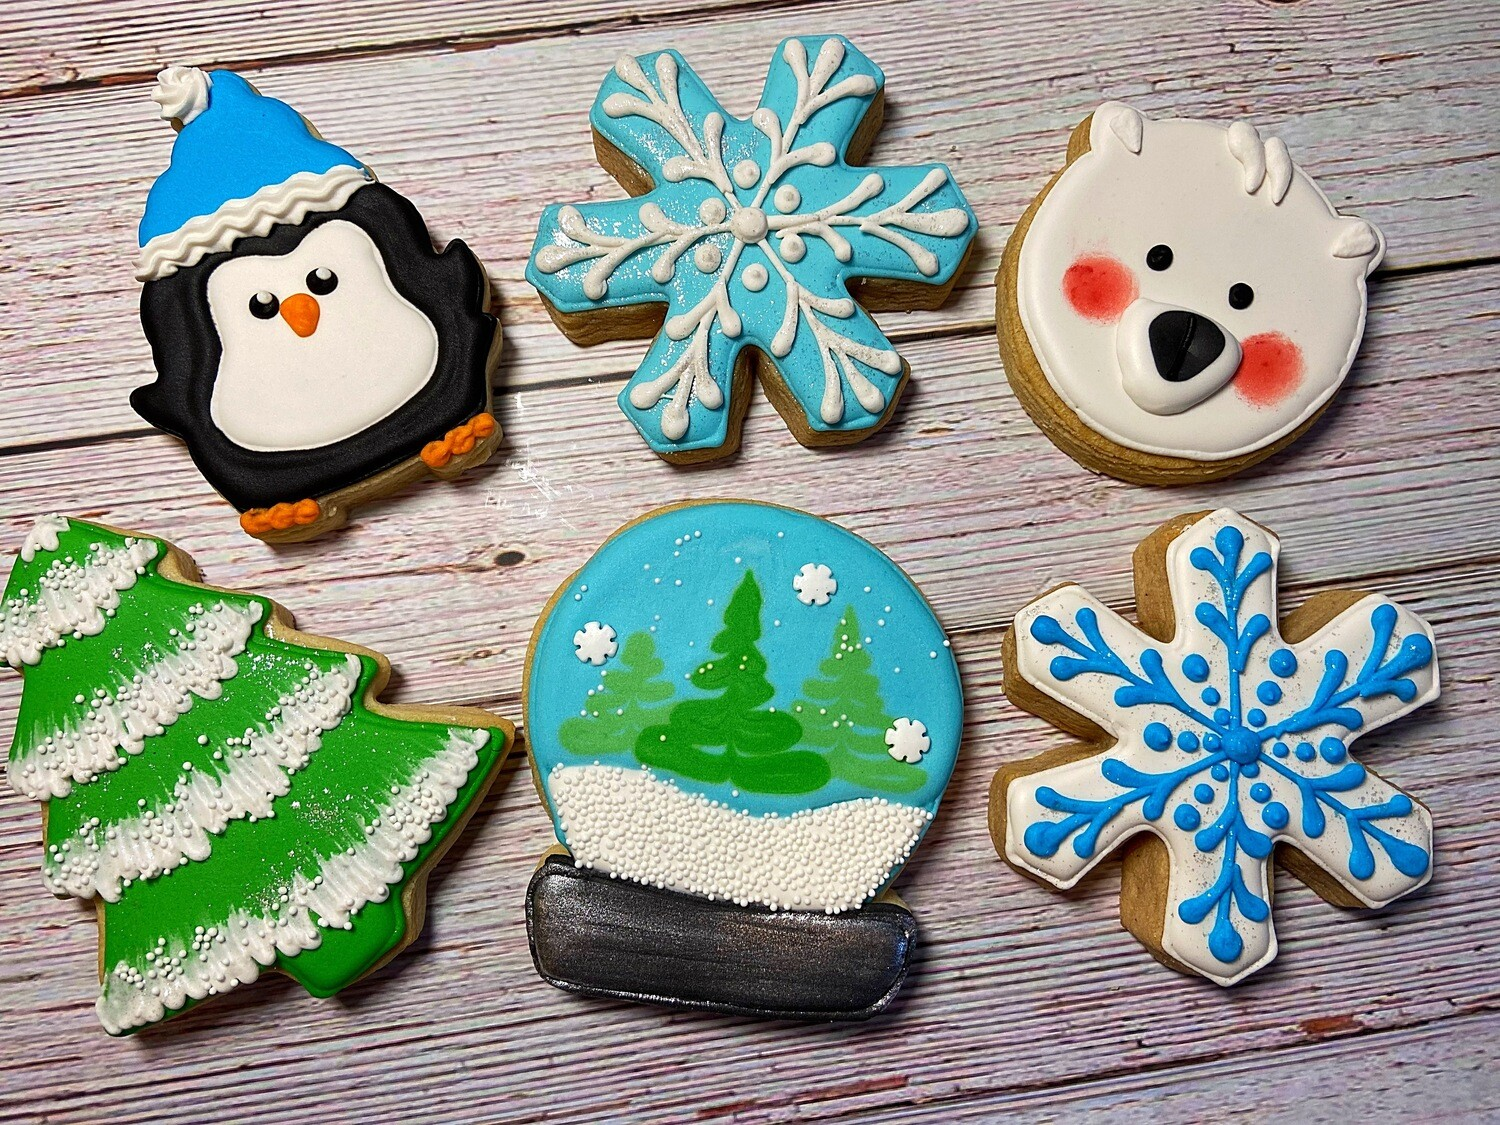 'Snow Globe Decorating Workshop - SUNDAY, NOVEMBER 22nd at 4 p.m. (THE COOKIE DECORATING STUDIO)